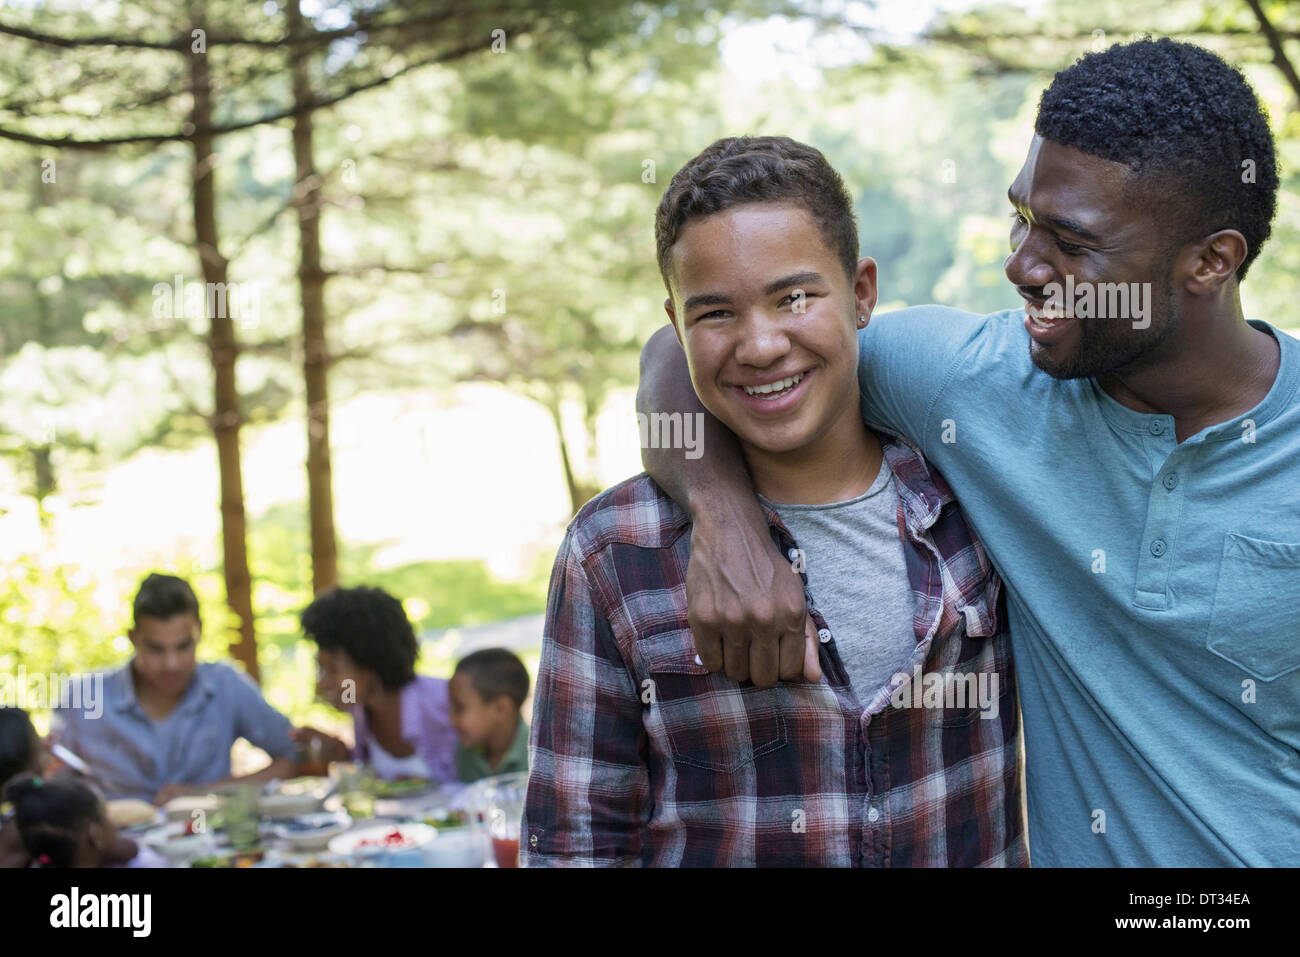 A man and a young boy looking at the camera - Stock Image